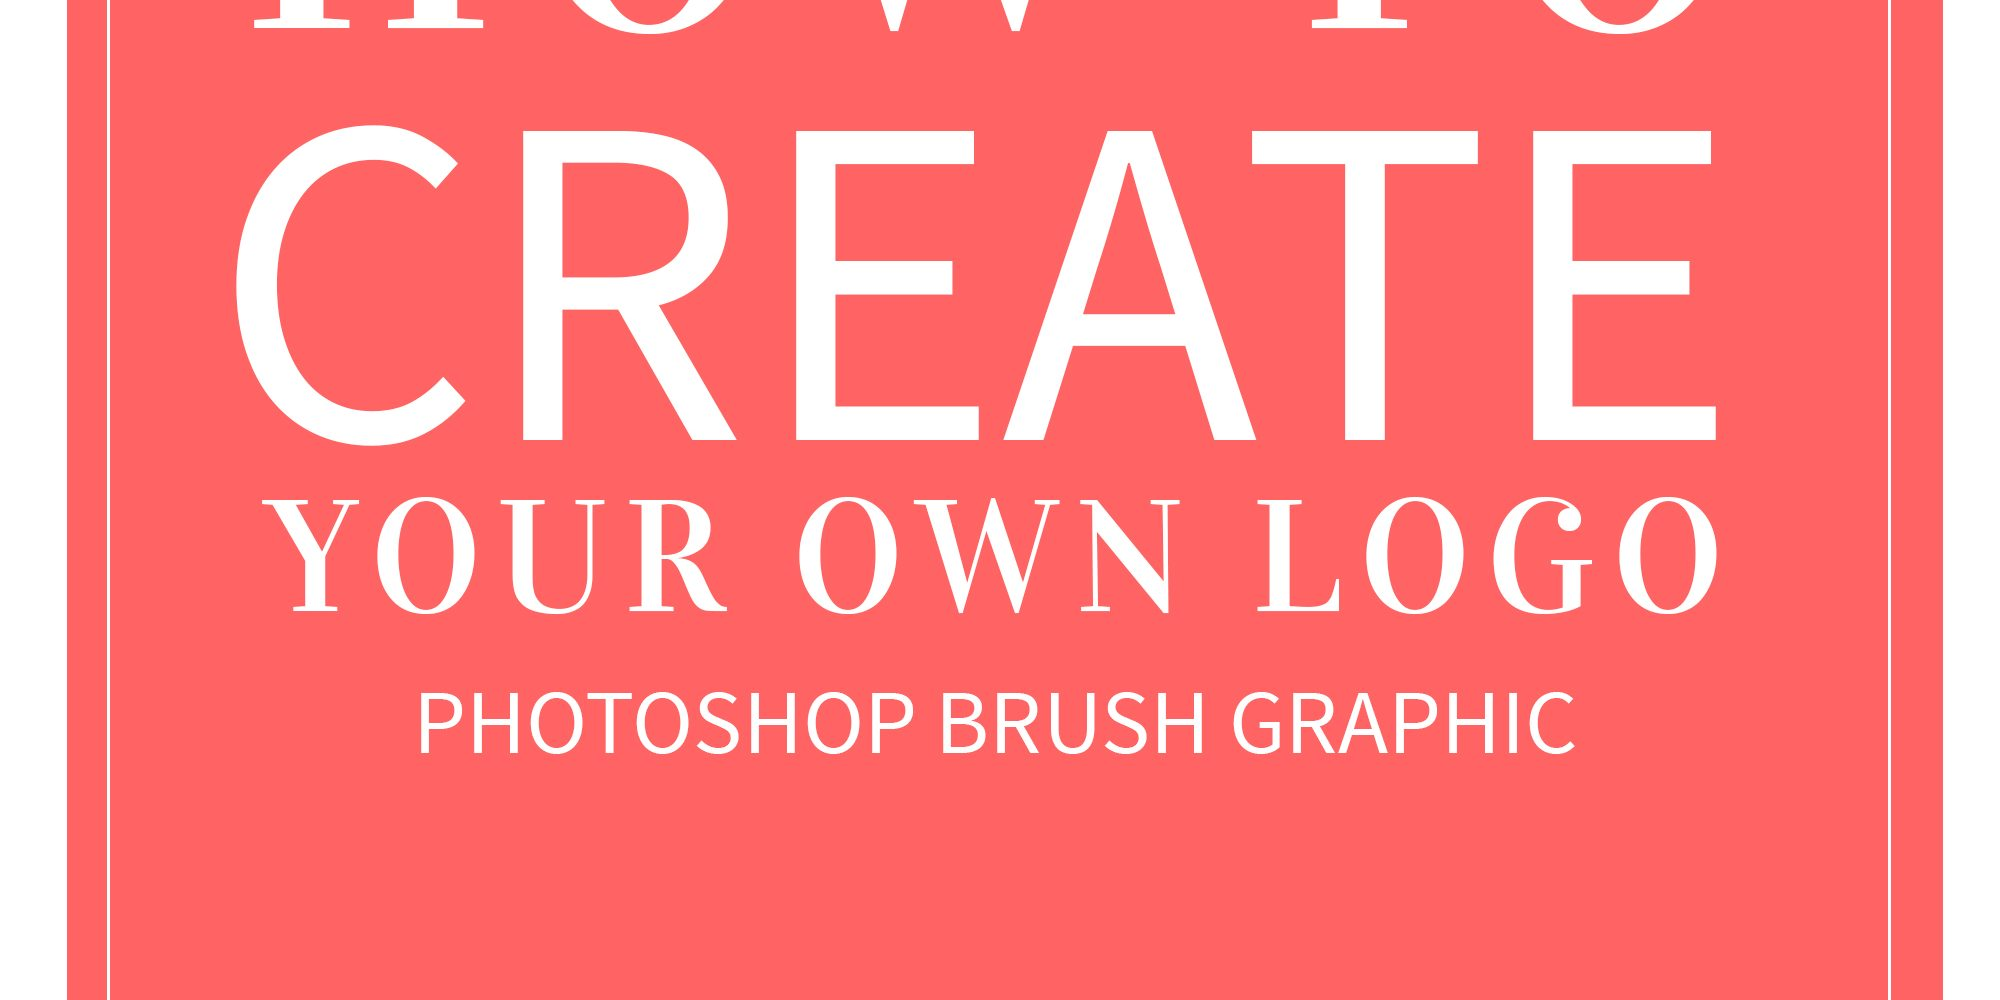 Create a photoshop brush